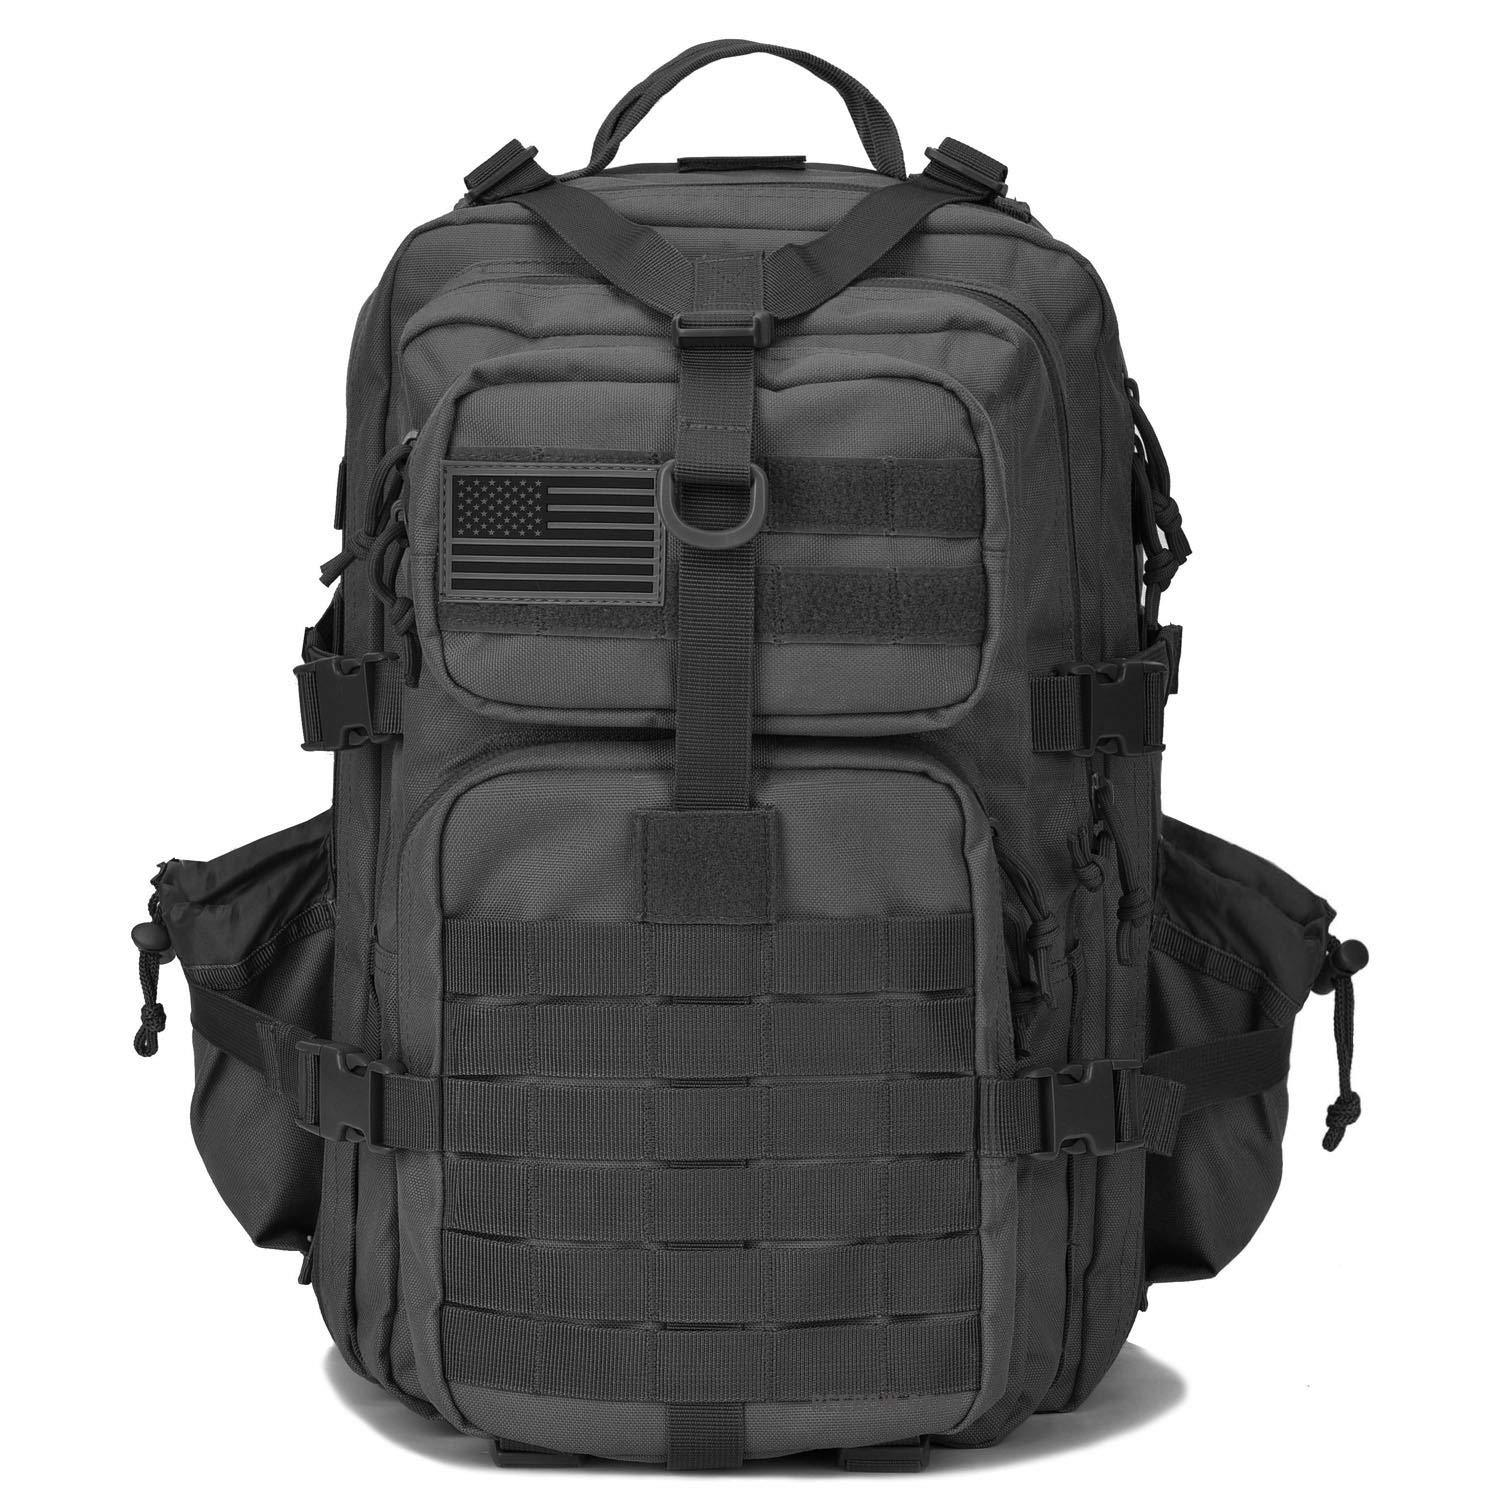 BOW-TAC tactical backpacks - Black 34L molle bug out backpack - Front view